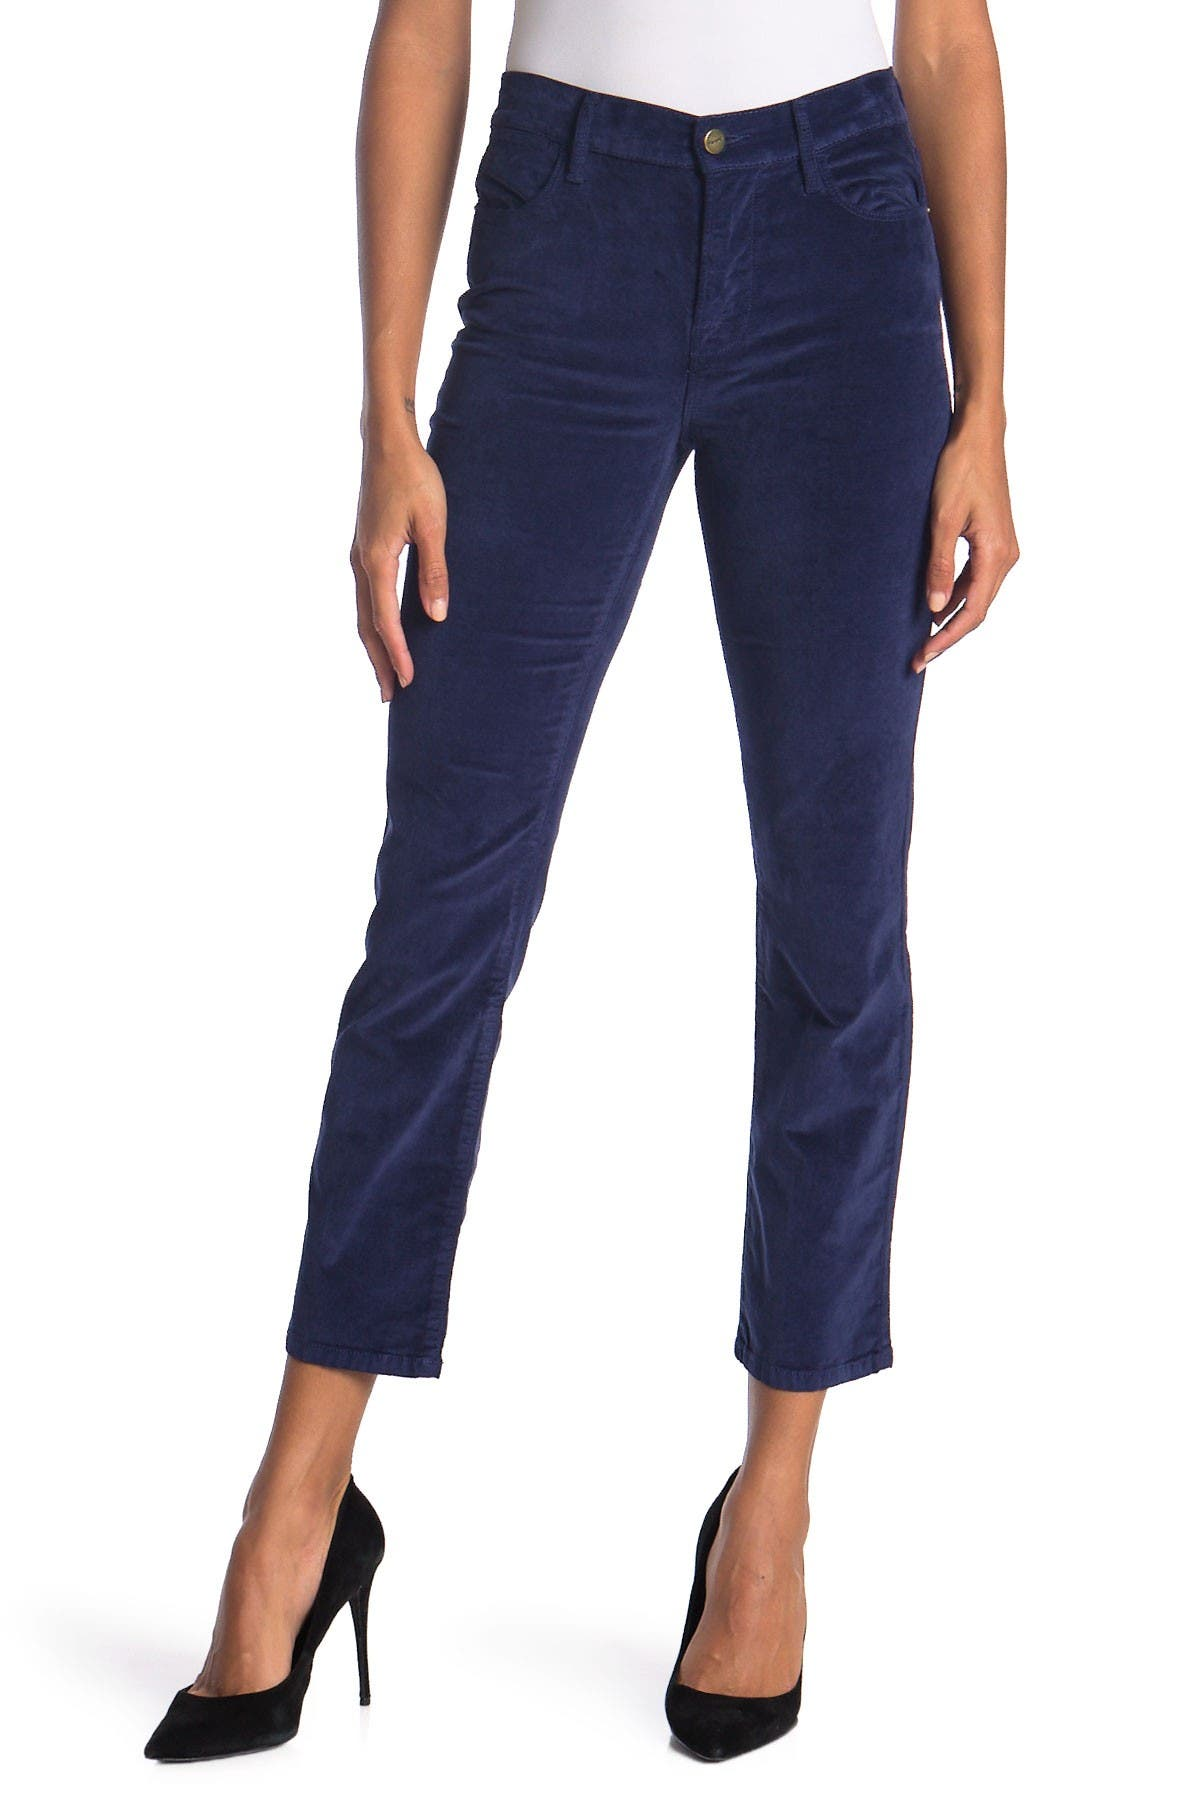 Image of FRAME Le High Velveteen Ankle Crop Straight Pants